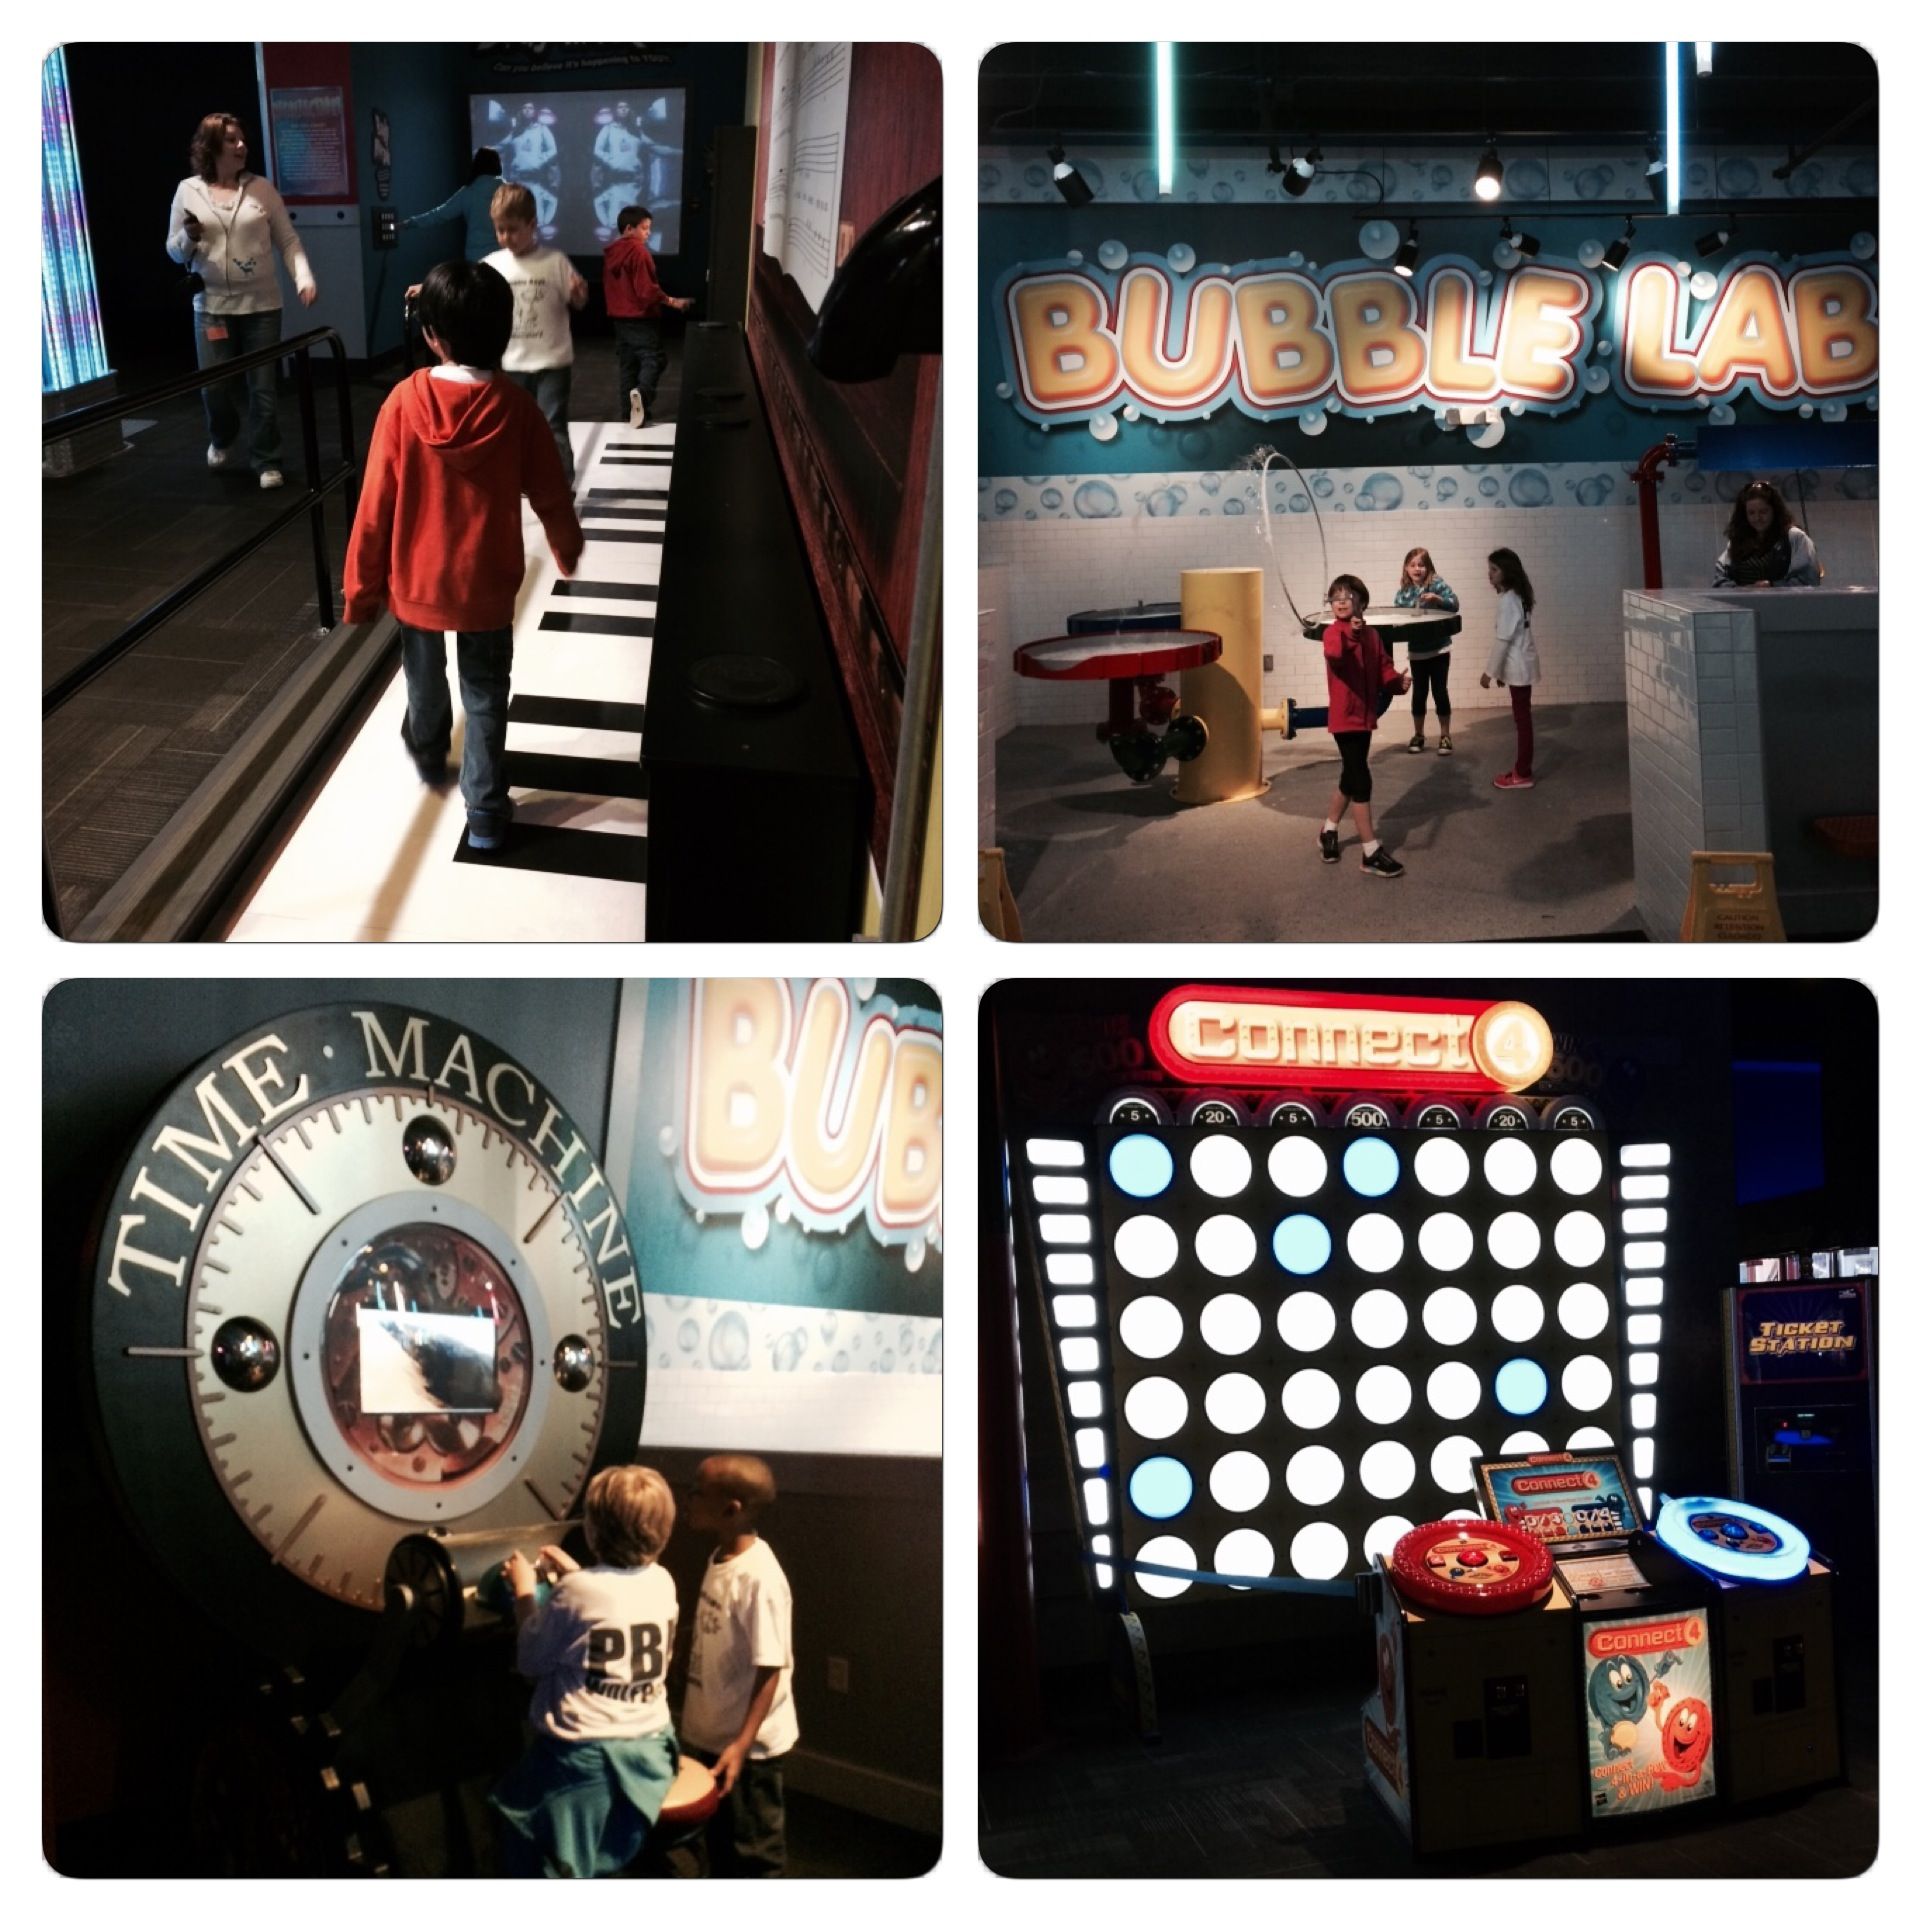 Wonderworks is a really cool place. A look at the giant piano, the Bubble Lab, time machine, and one of the giant interactive games.